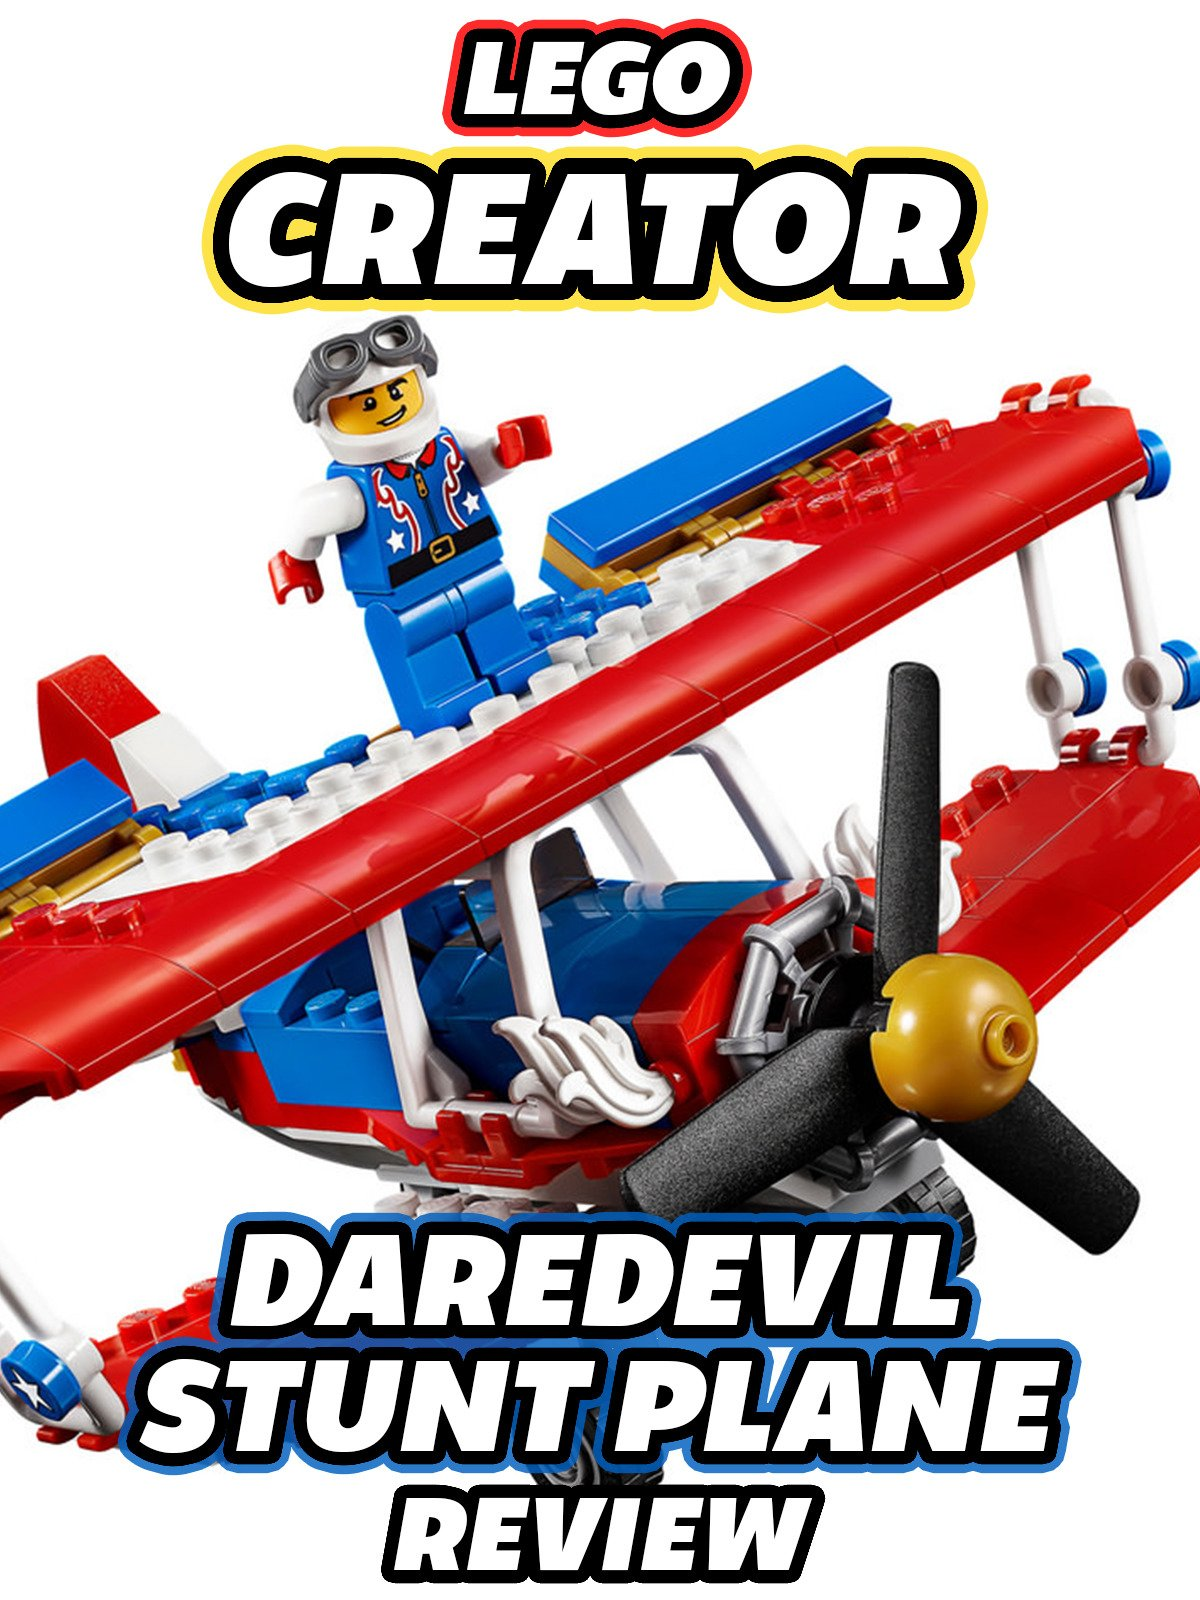 Review: Lego Daredevil Stunt Plane Review